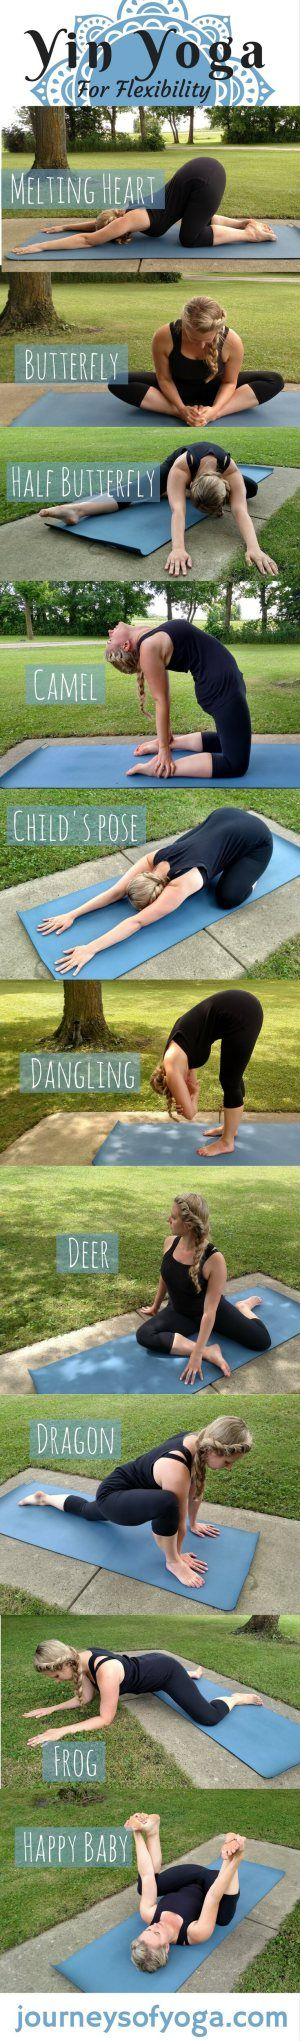 More poses in the post, plus yin yoga benefits | Posted By: NewHowToLoseBellyFat.com